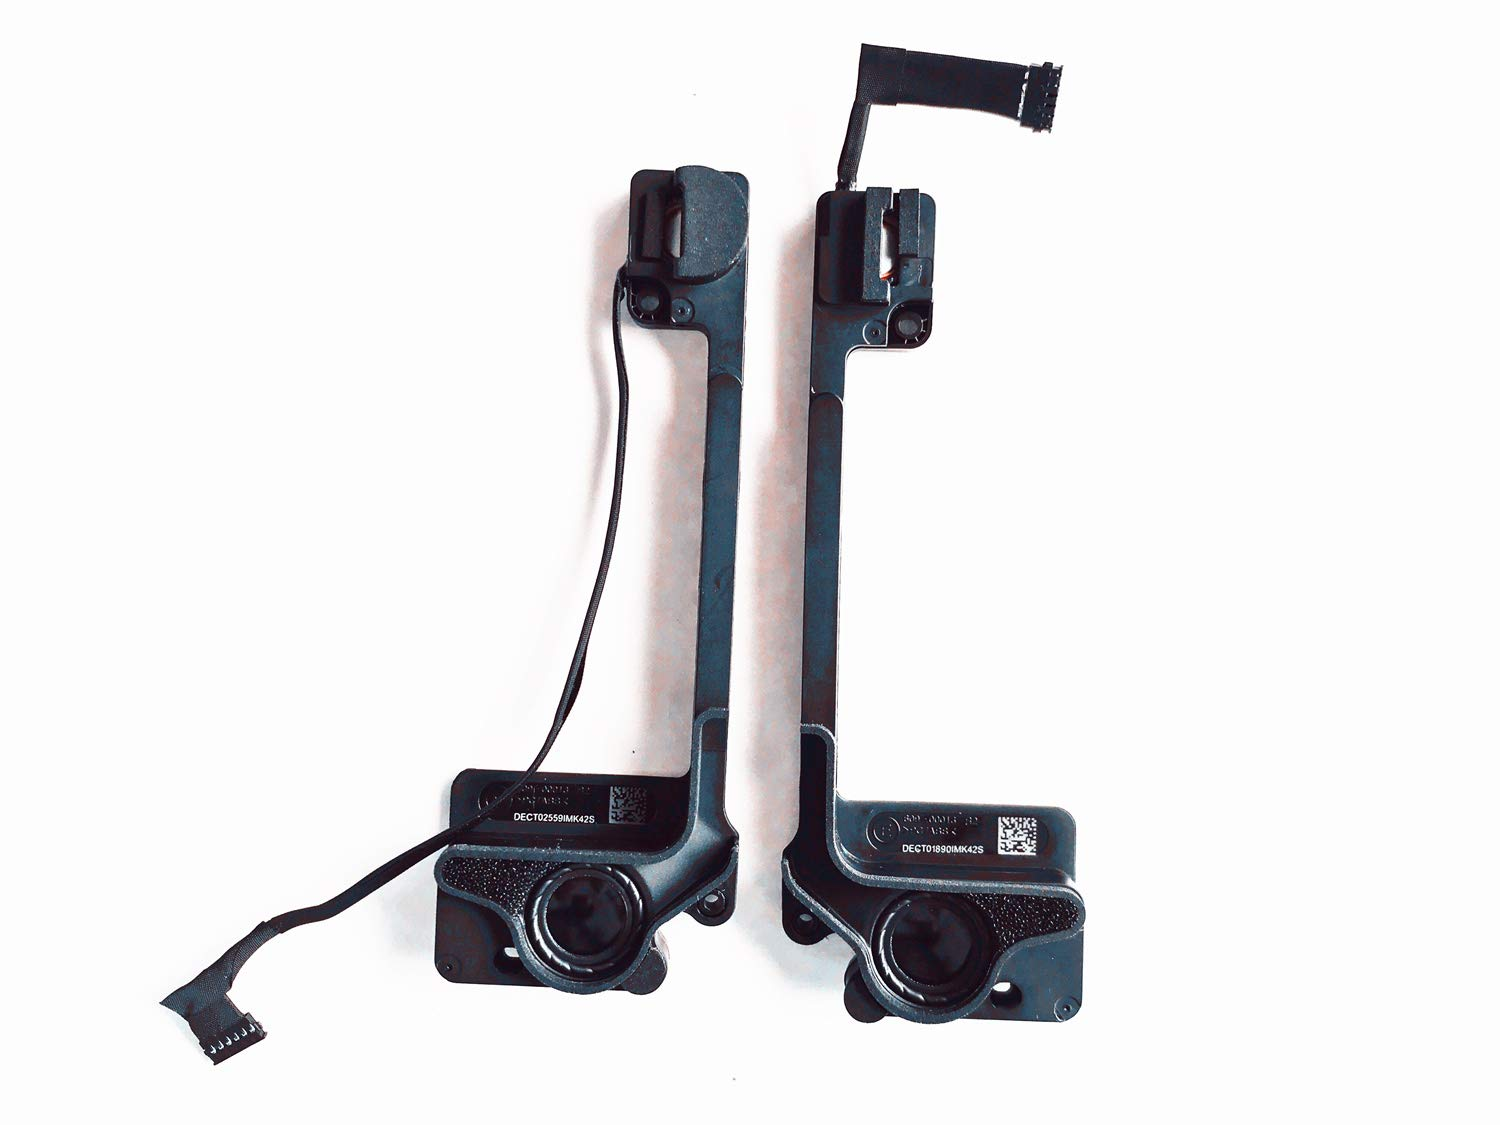 Late 2013, Mid 2014, Early 2015 YIIKII Left and Right Speaker Set Replacement for MacBook Pro 13 Retina A1502